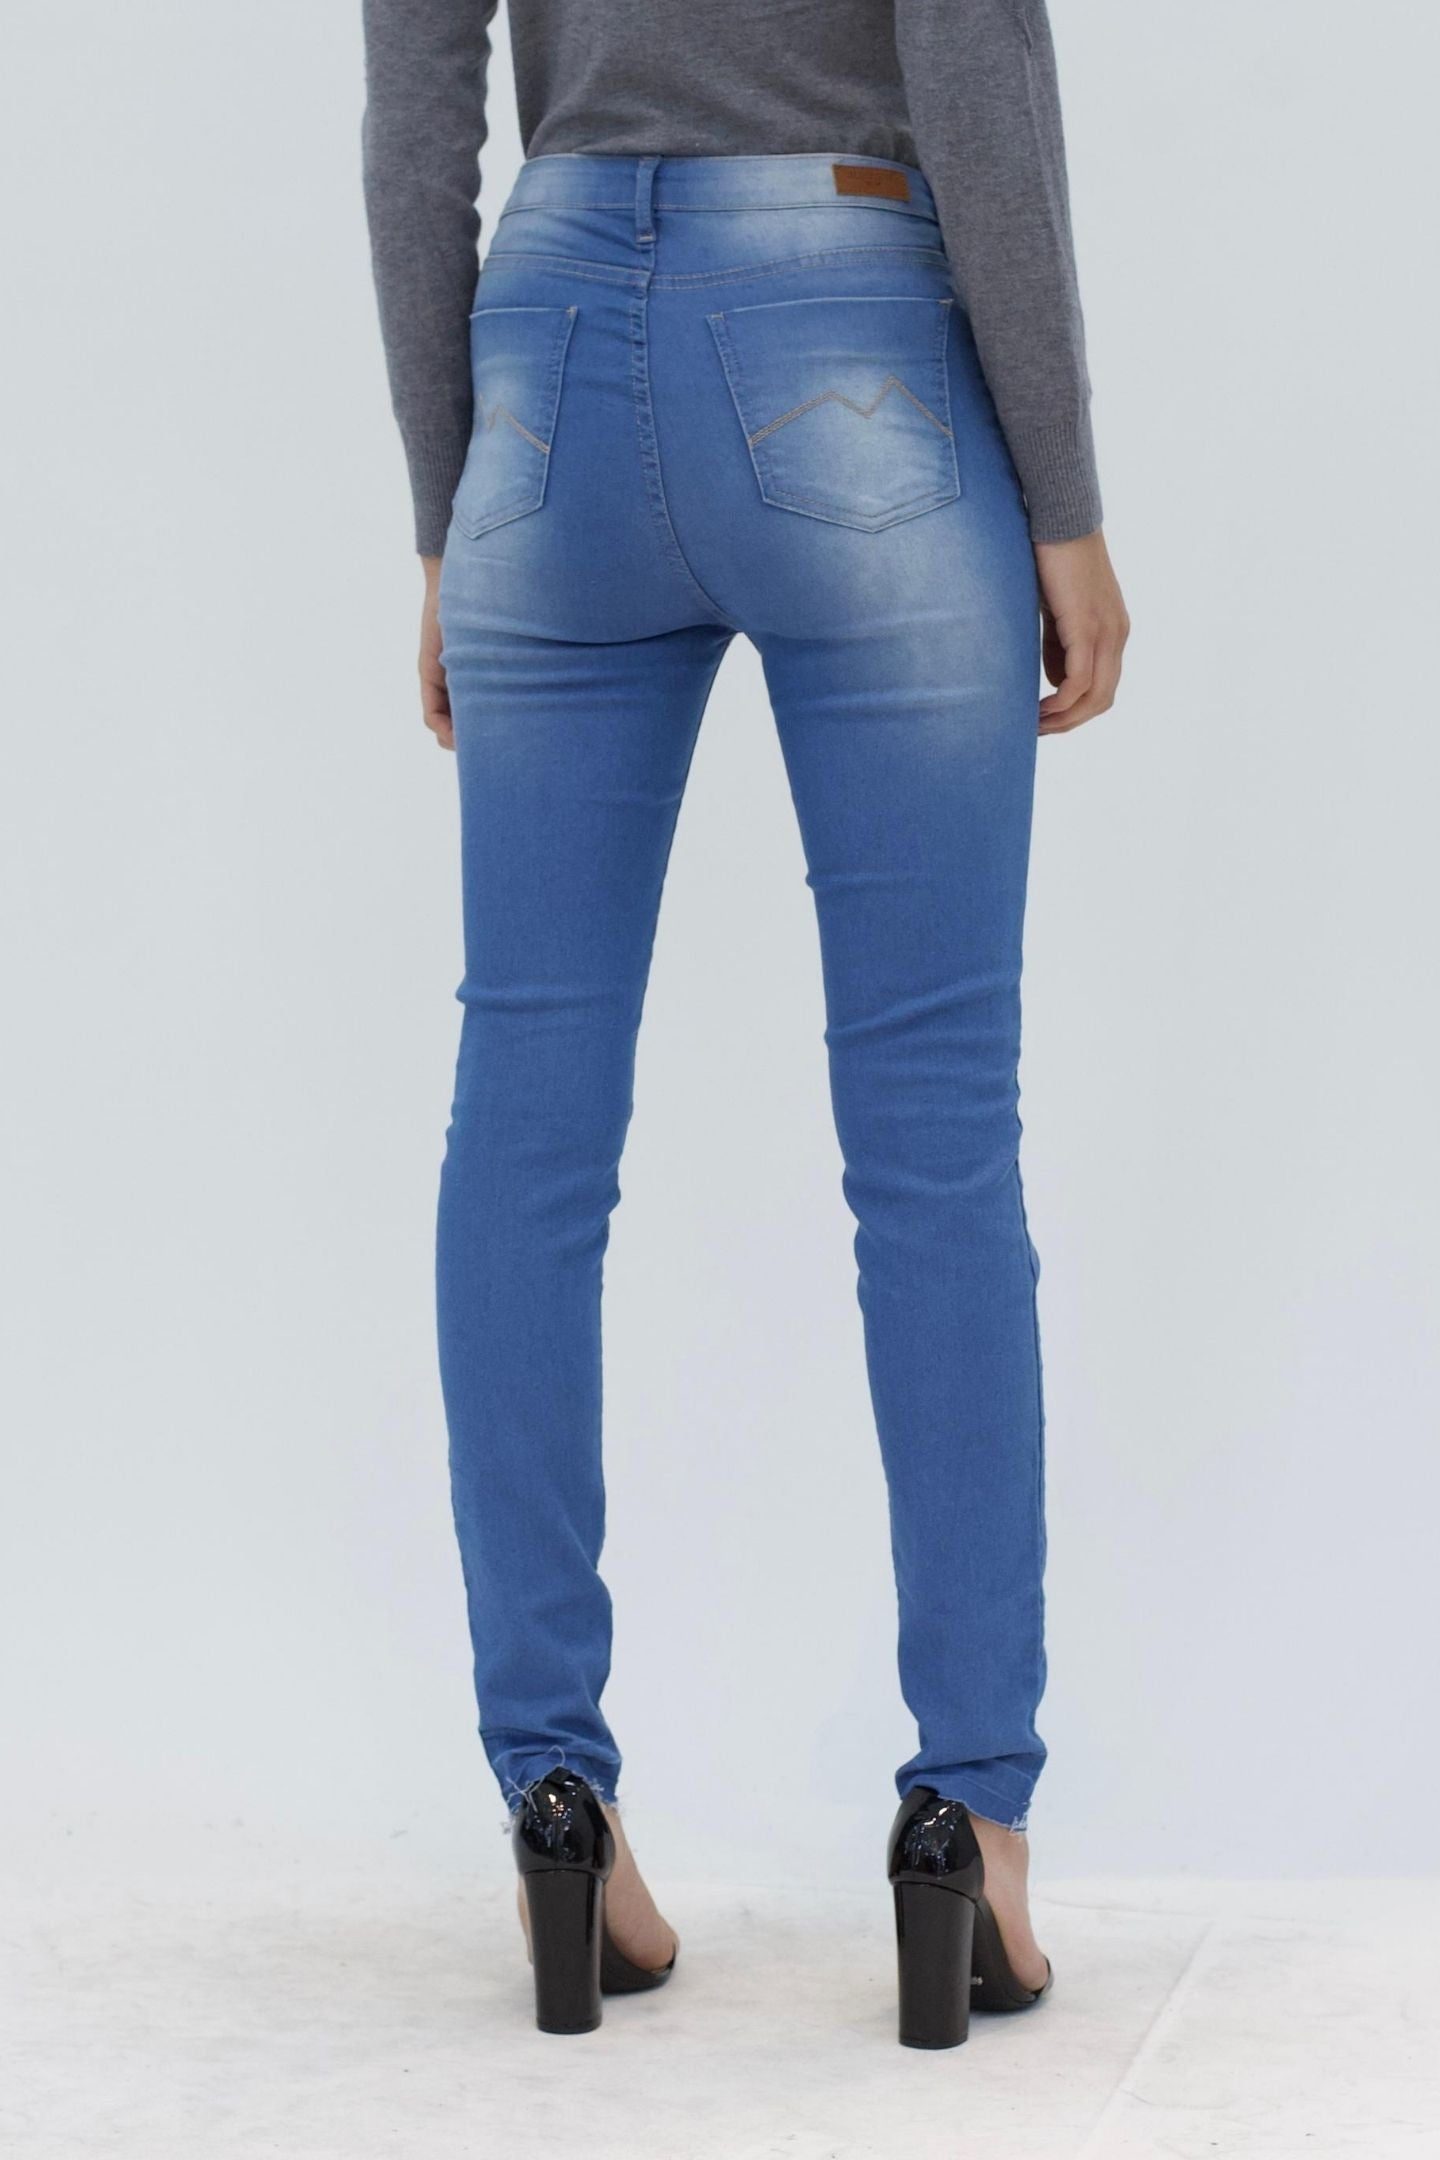 CALÇA JEANS SKINNY C4 LIGHT BLUE